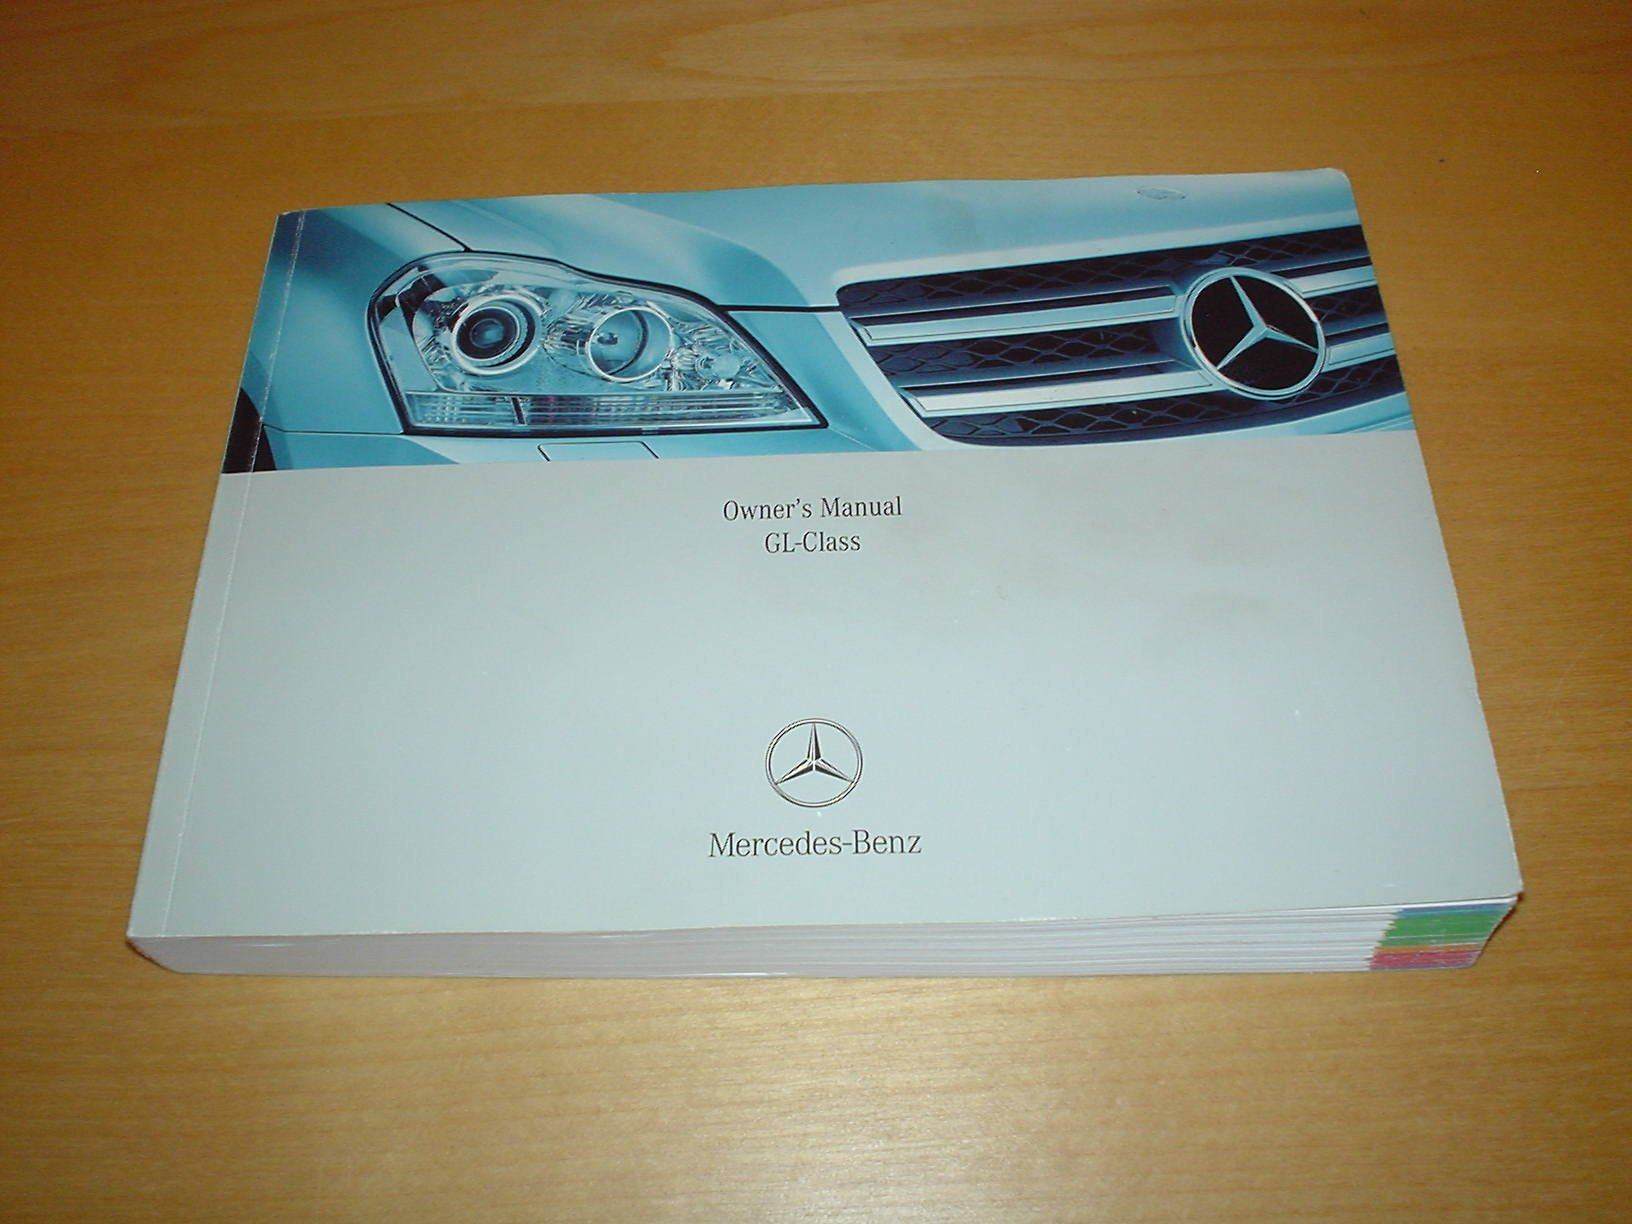 mercedes benz x164 gl class owners manual handbook 2006 2011 rh amazon co uk 12H802 Manual 12H802 Manual